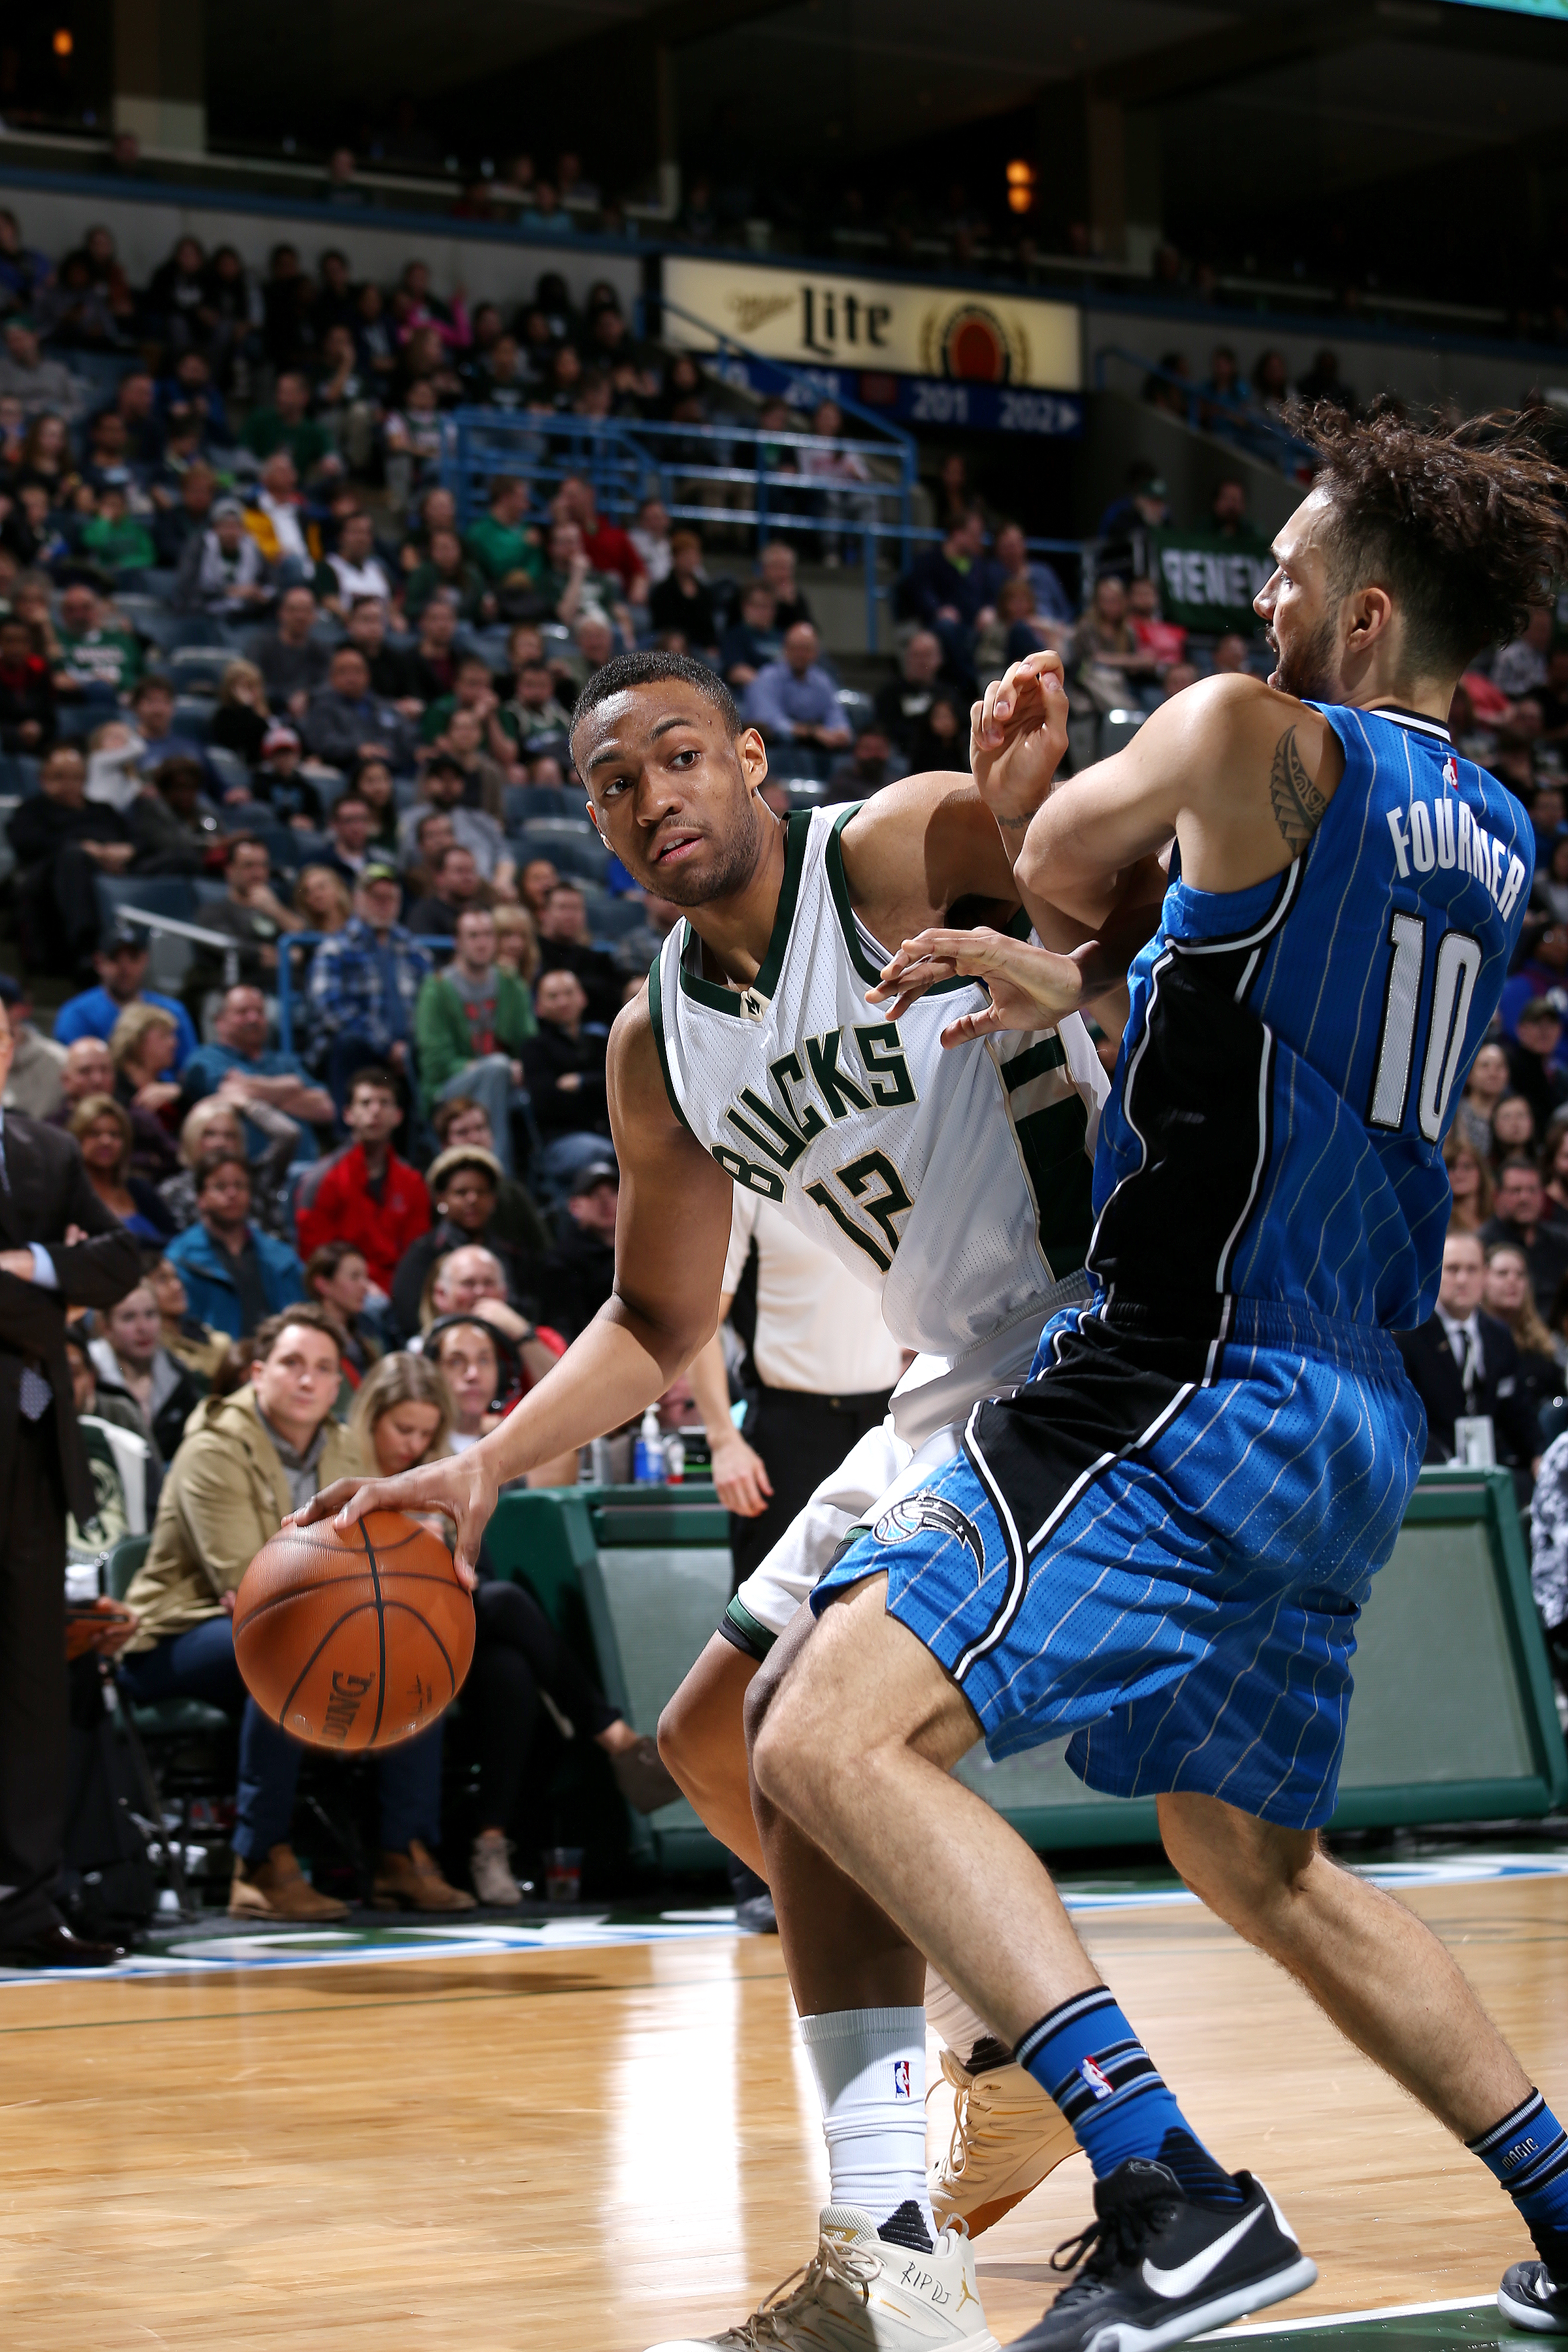 Milwaukee, WI - APRIL 1: Jabari Parker #12 of the Milwaukee Bucks handles the ball during the game against the Orlando Magic on April 1, 2016 at the BMO Harris Bradley Center in Milwaukee, Wisconsin. (Photo by Gary Dineen/NBAE via Getty Images)